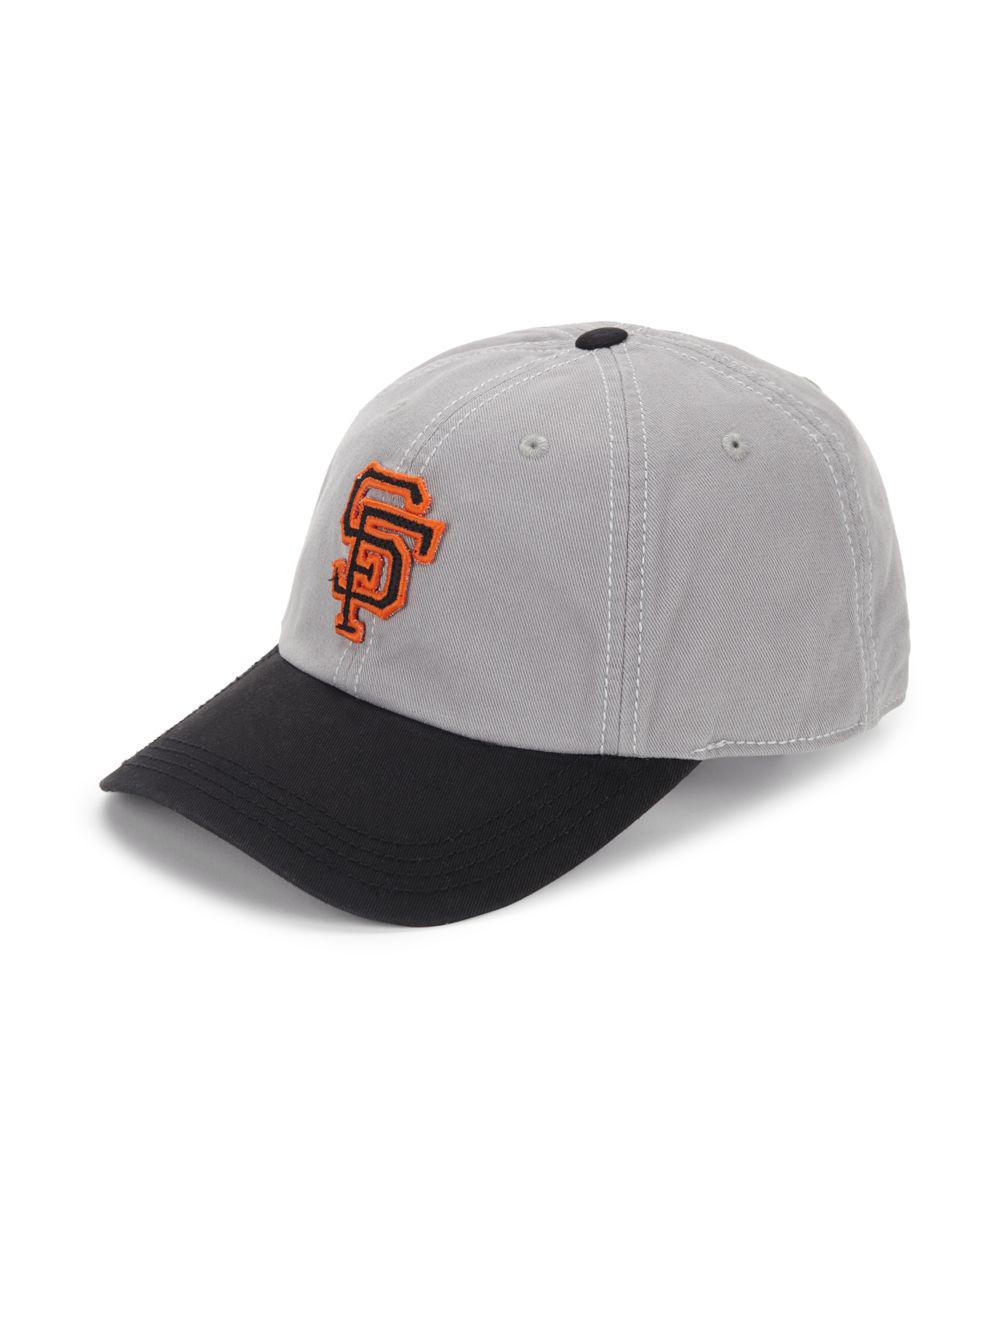 Lyst - Red Jacket San Francisco Giants Cotton Baseball Cap in Gray ... 836022898